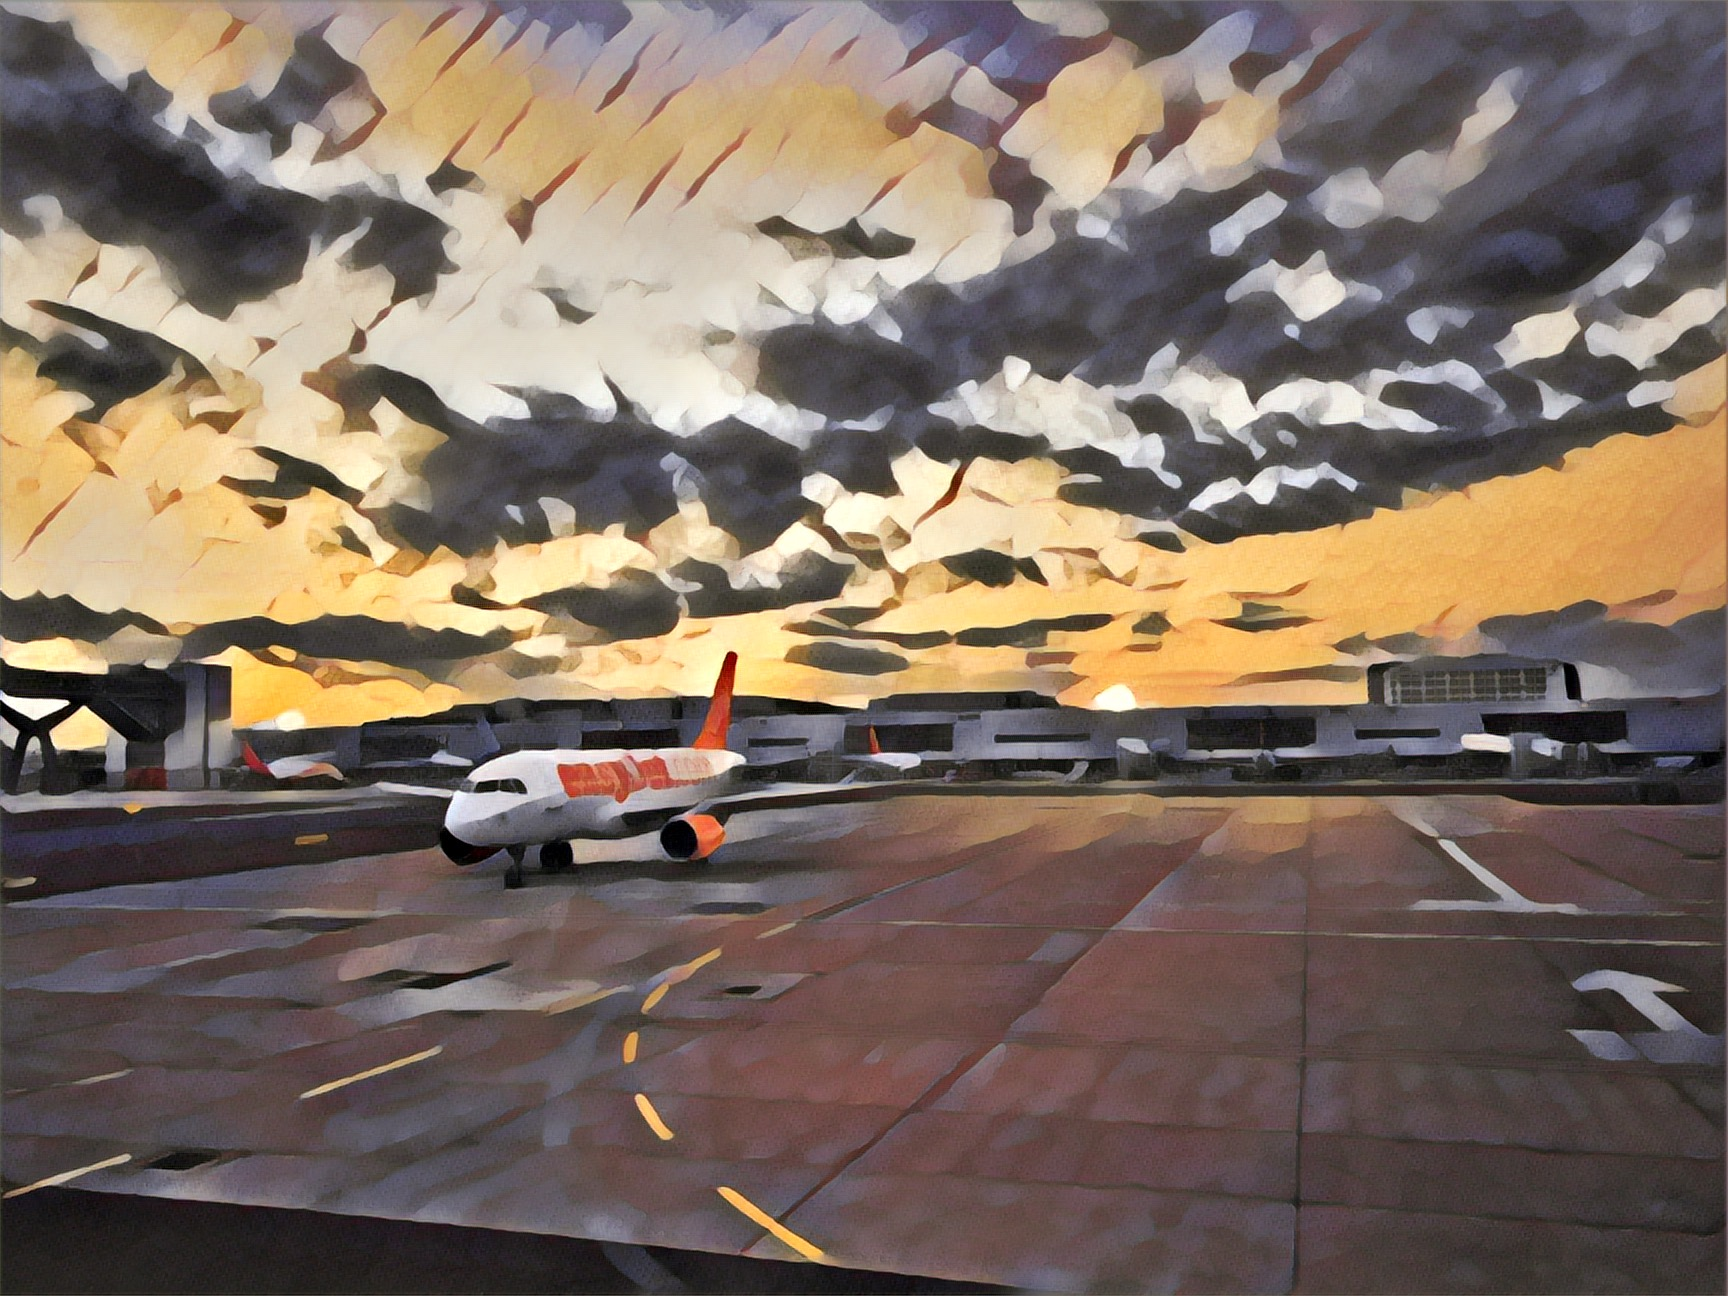 On the tarmac at Gatwick